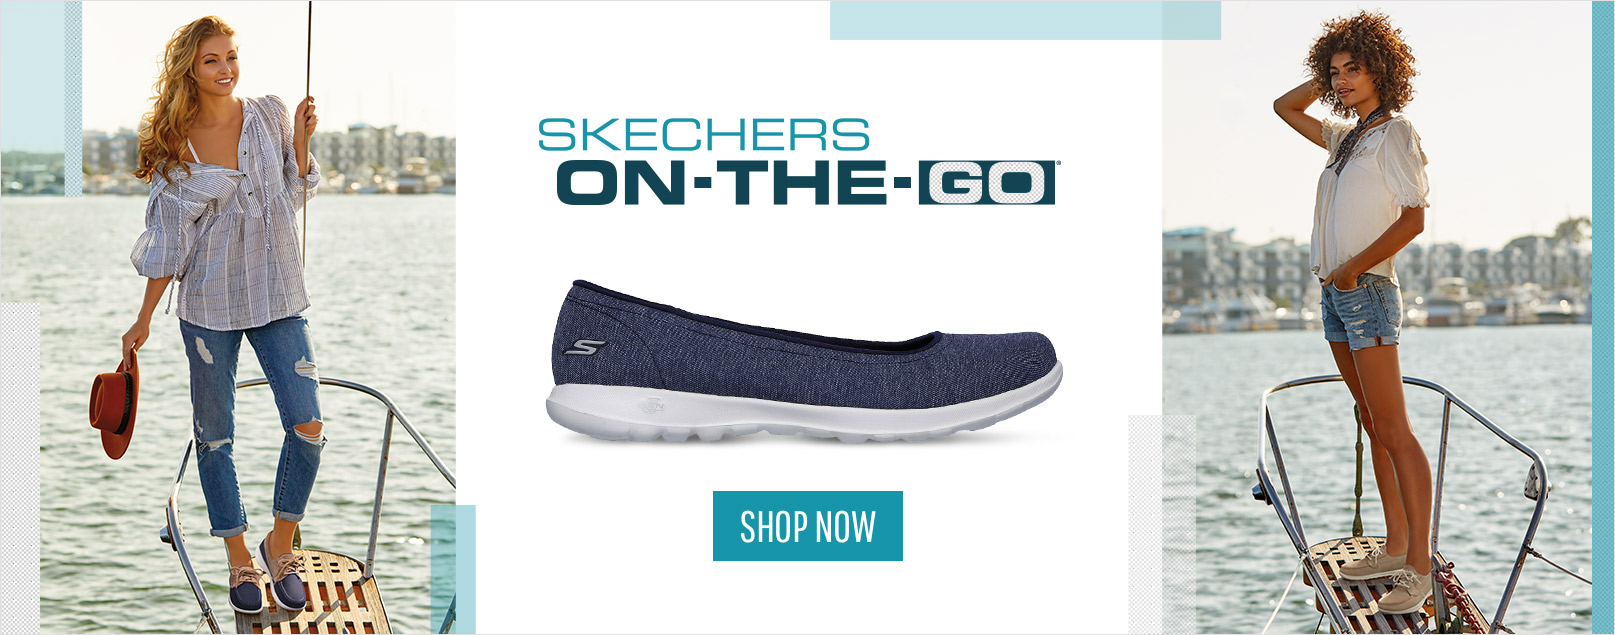 Discover the perfect style for your busy life with the Skechers Performance On the GO collection.  Boat shoes, casual flats, sneakers and more all feature built in comfort.